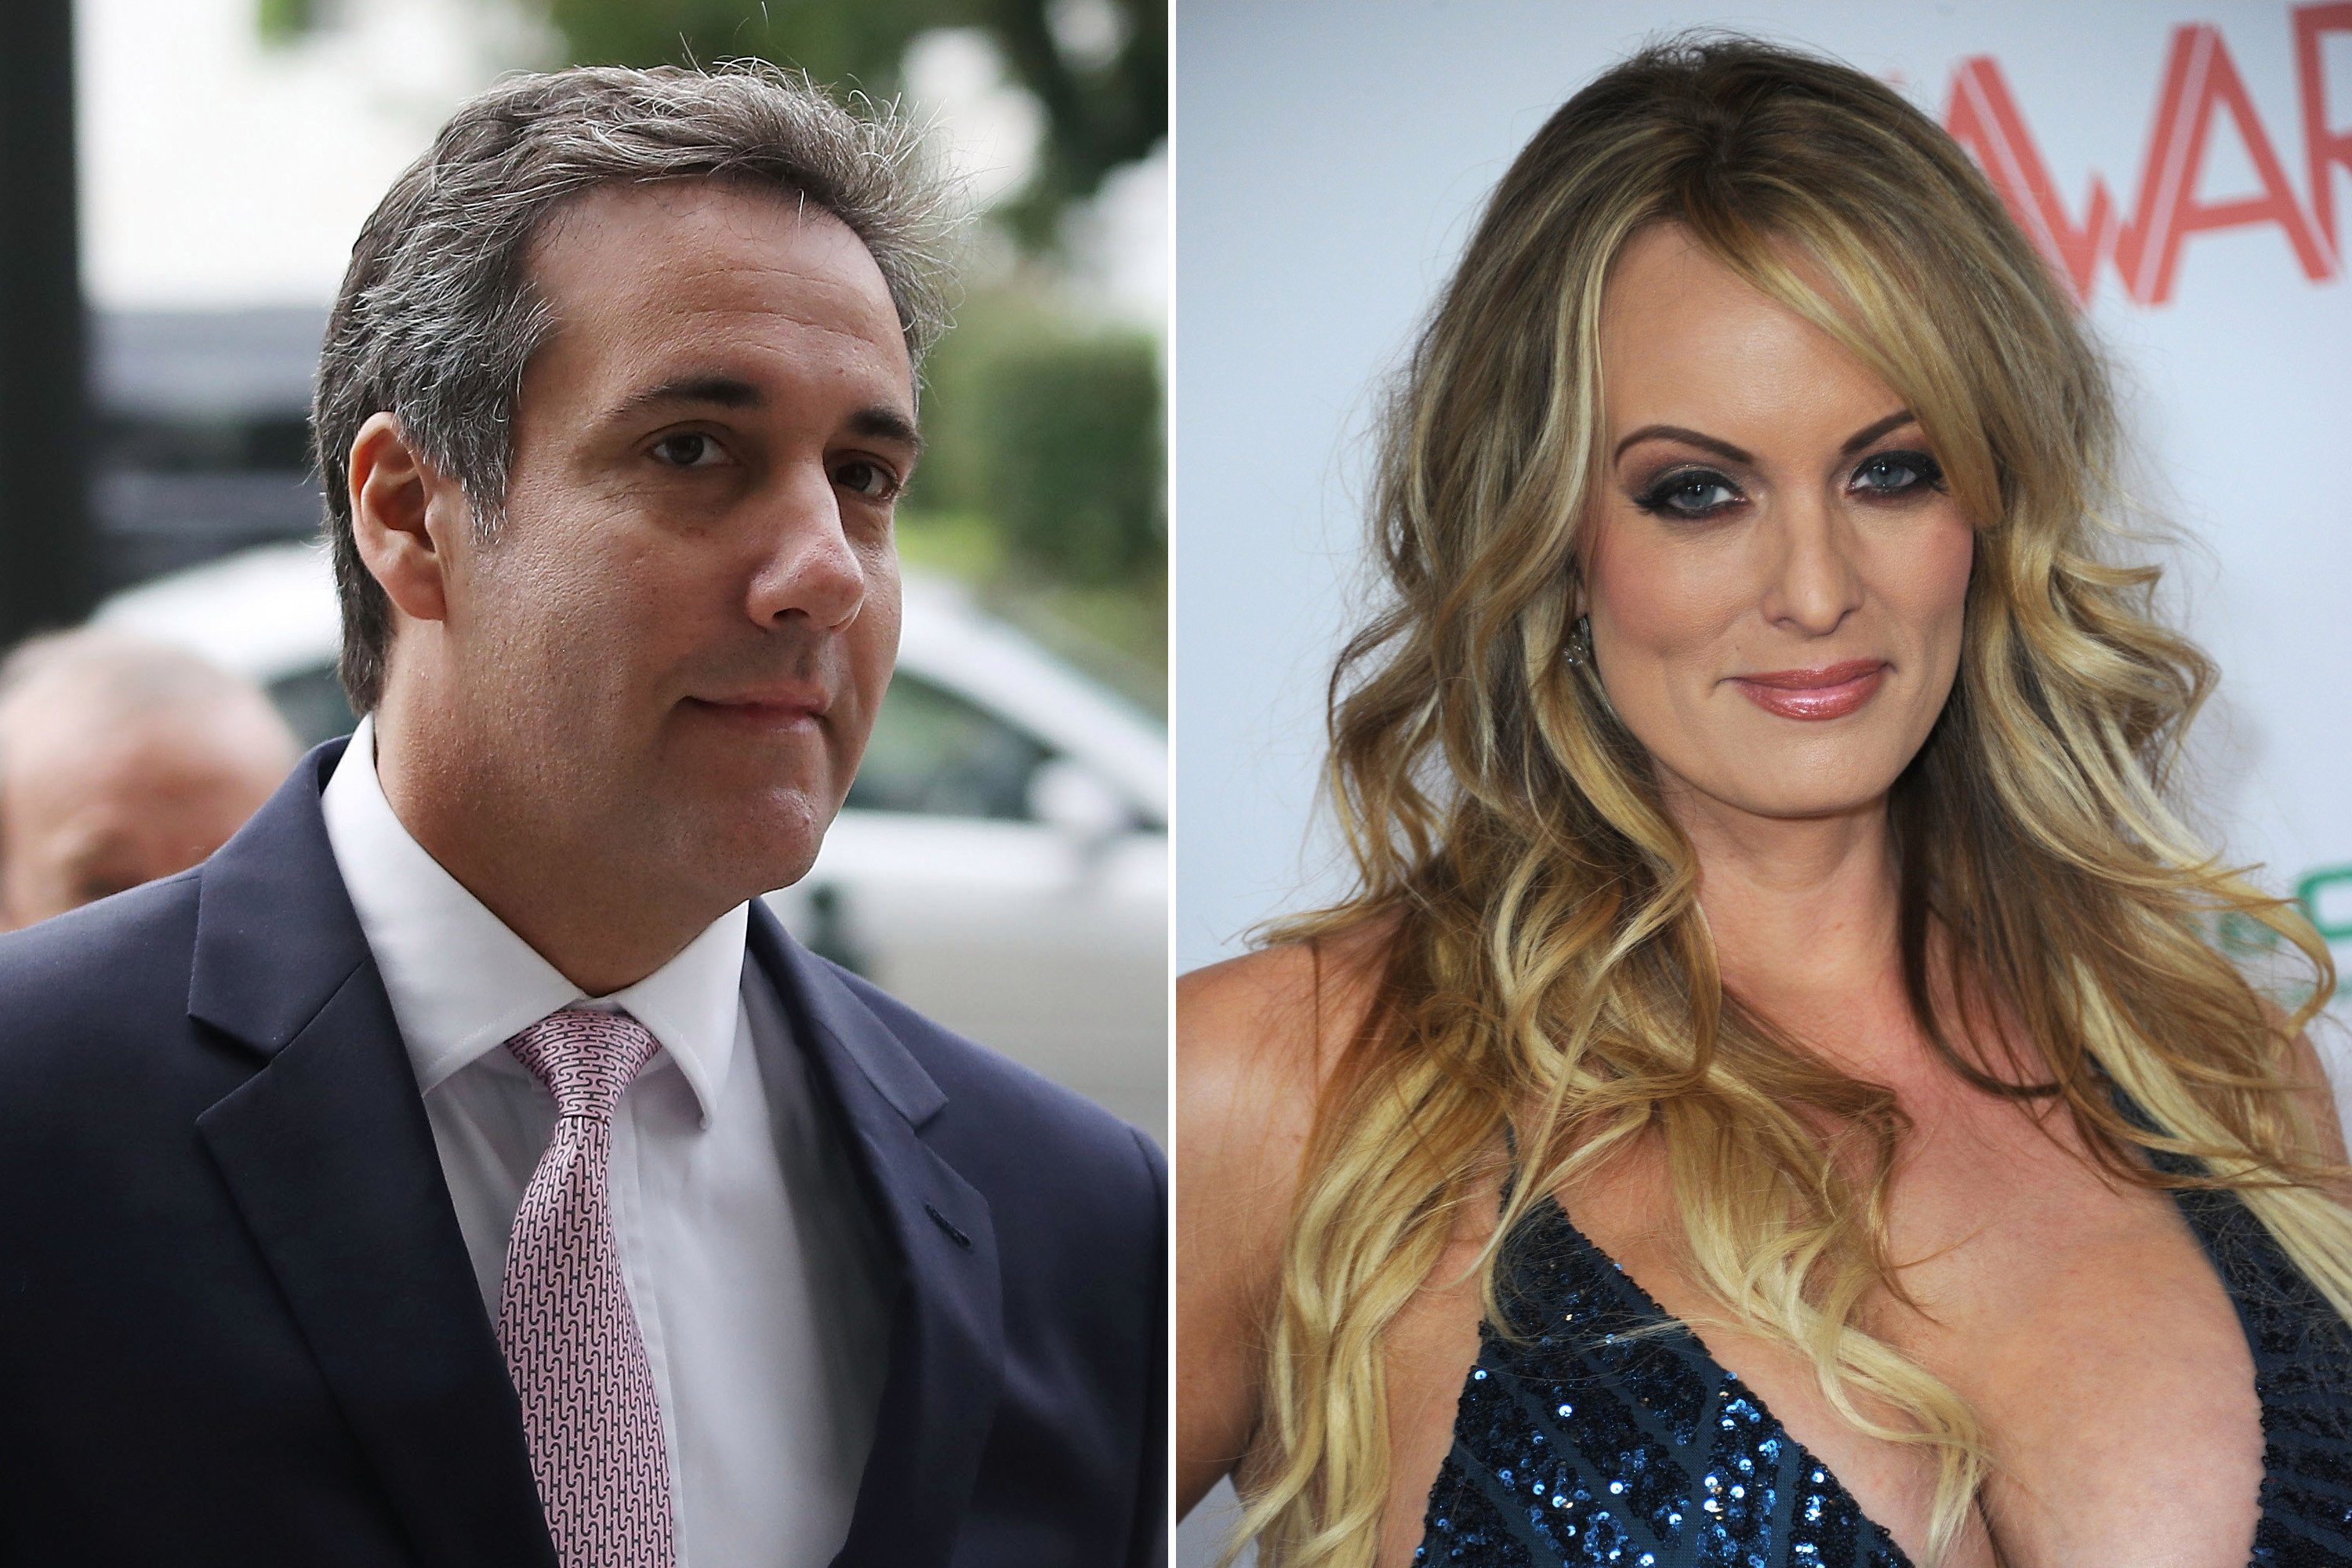 Trump's lawyer admits paying $130K to Stormy Daniels